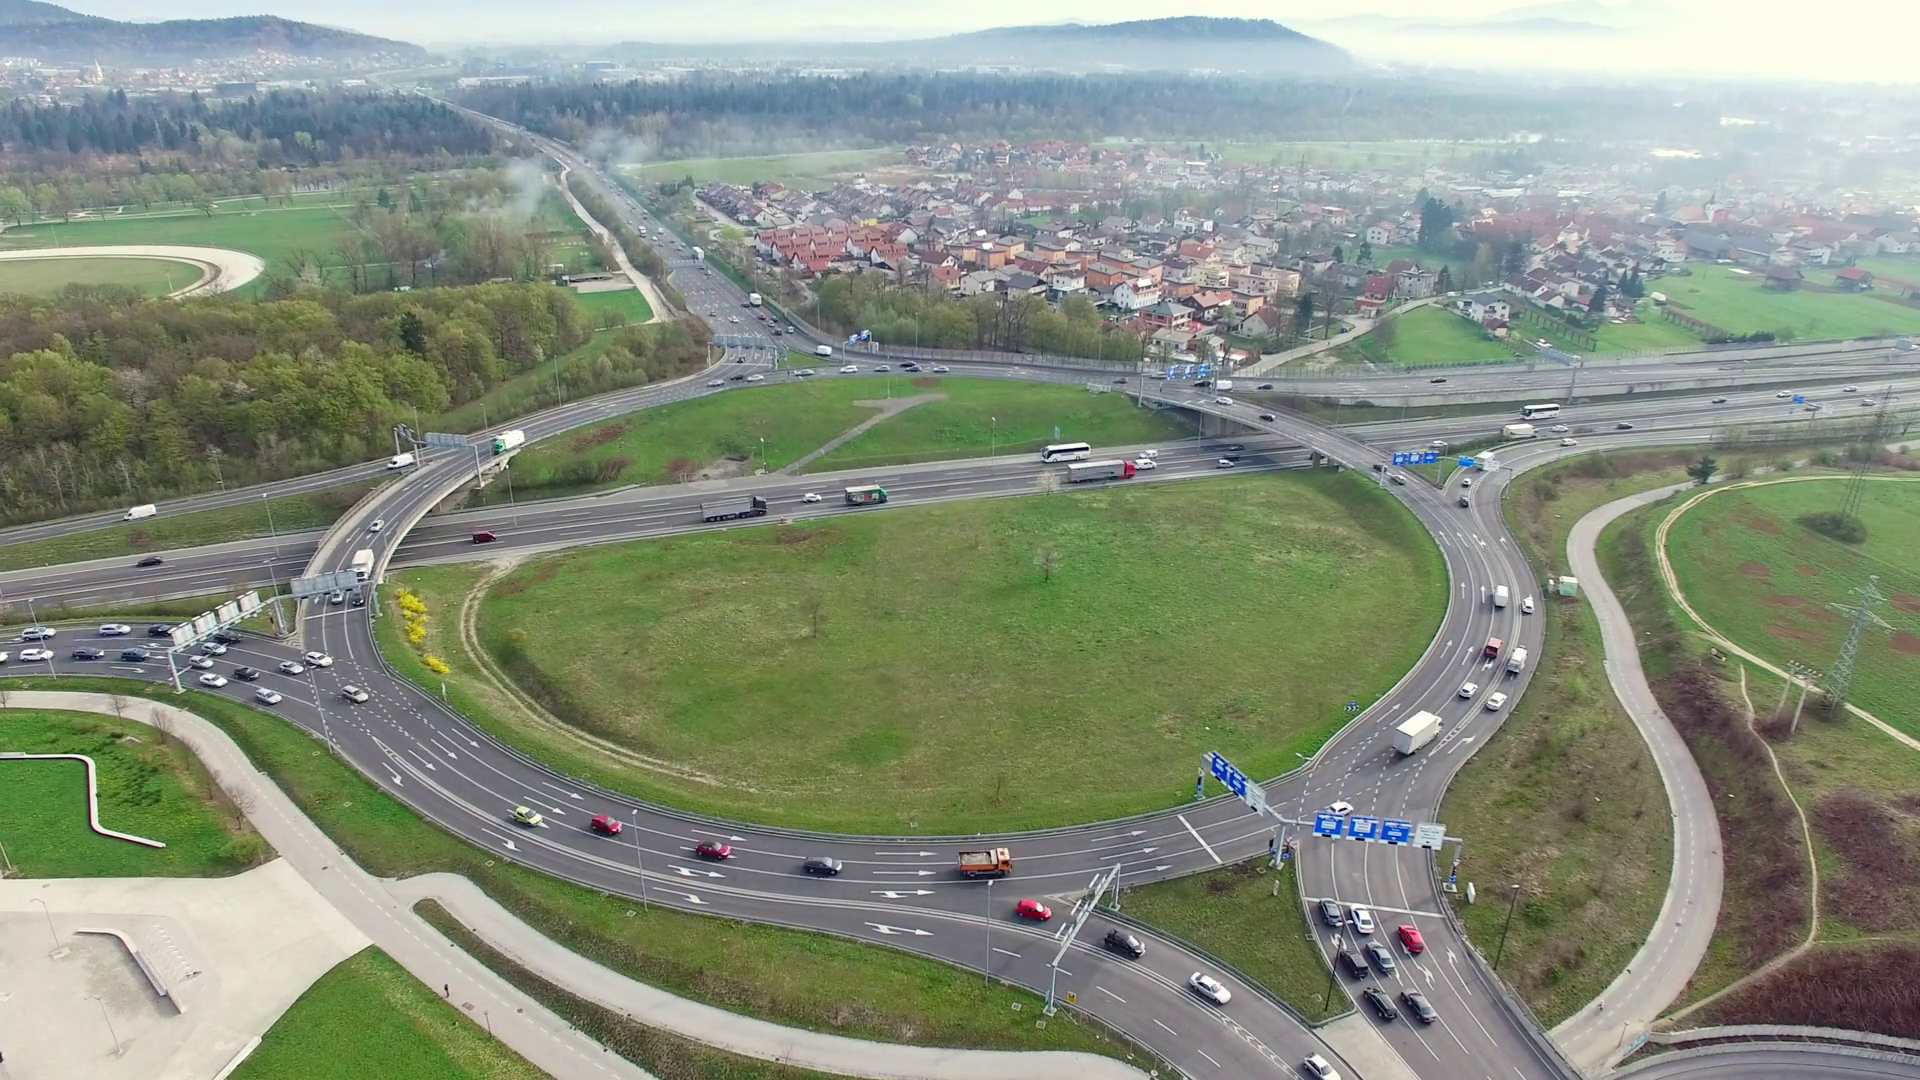 Aerial: Drone Shot Of Traffic Scene In Roundabout - Timelapse Stock ...